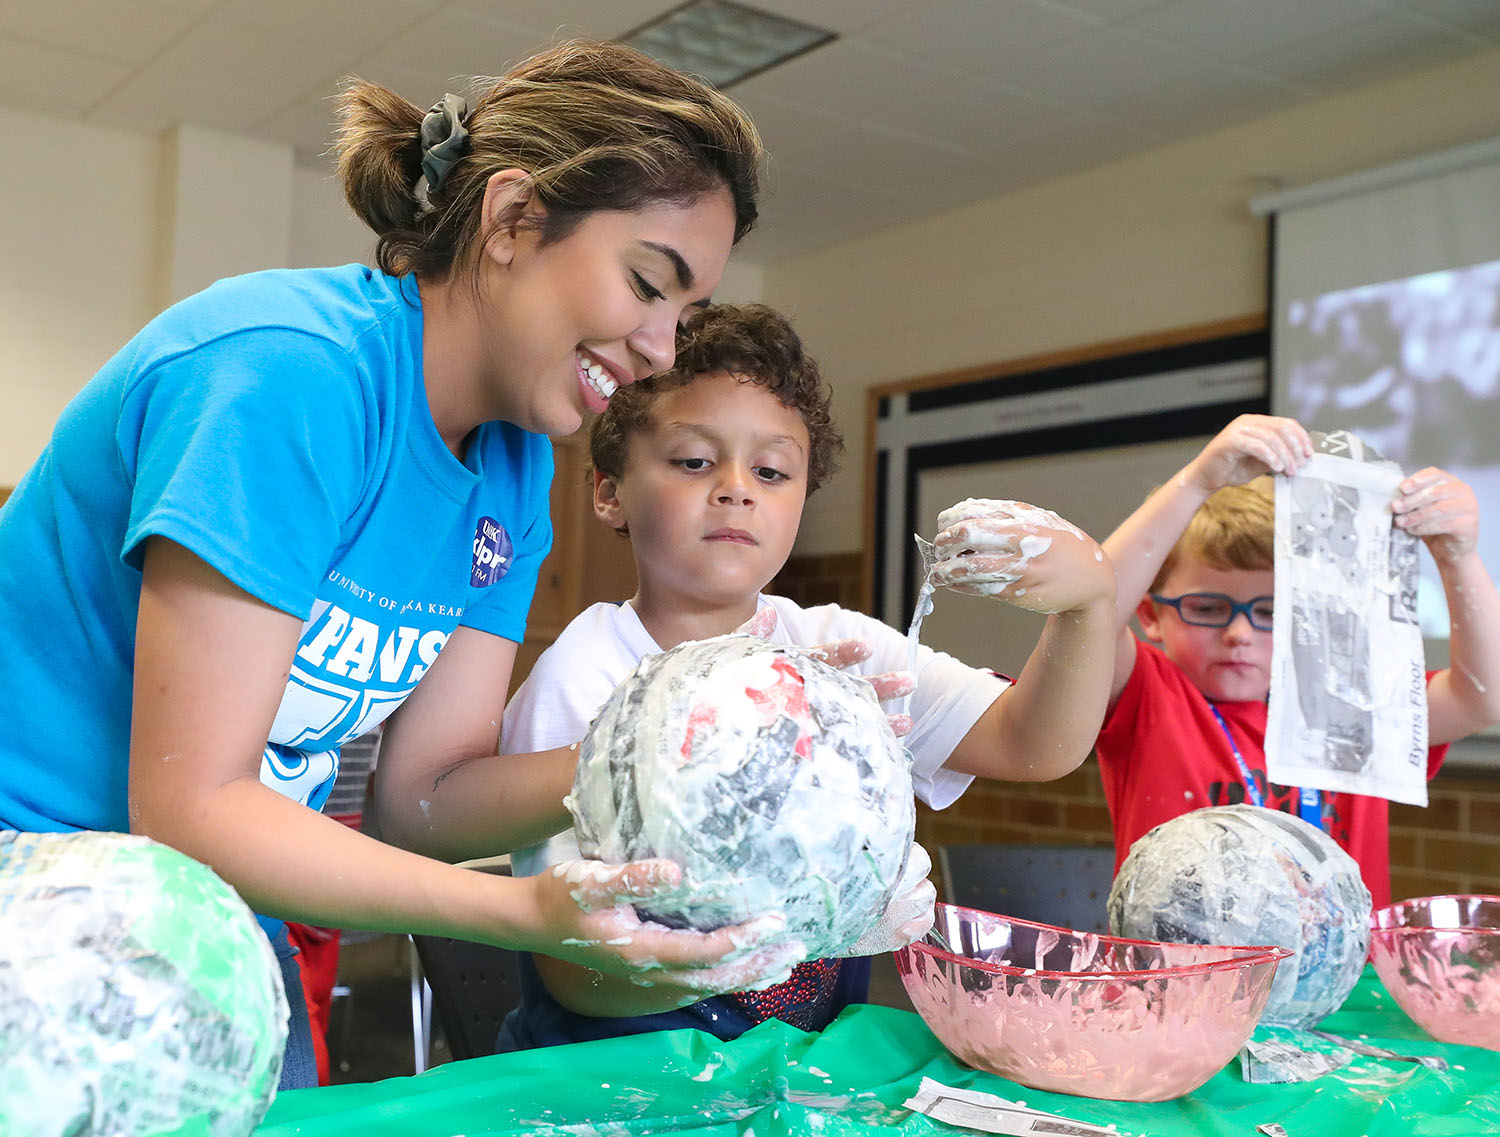 PAWS University features a variety of one-week workshops and four-week academies for elementary students. The summer learning program is offered June 7 through July 2 on the UNK campus.